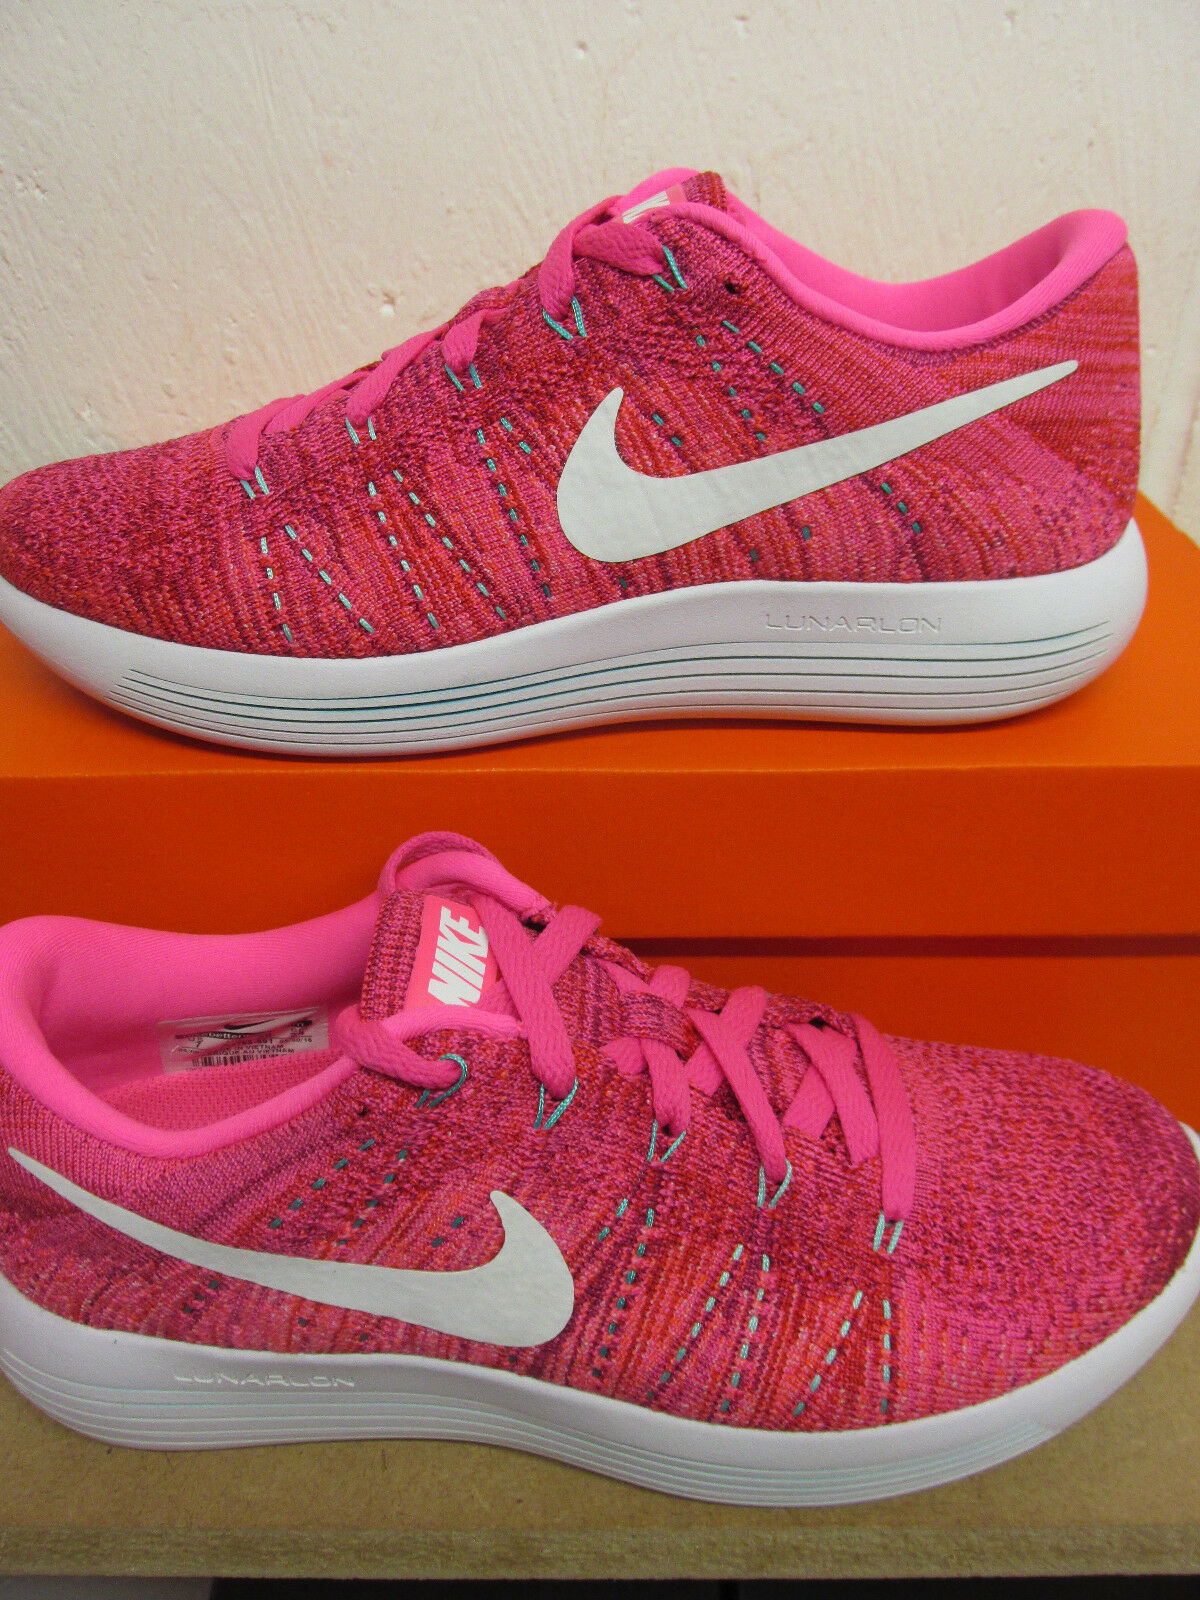 Nike Womens Lunarepic Low Flyknit Running Trainers 843765 601 Sneakers Shoes